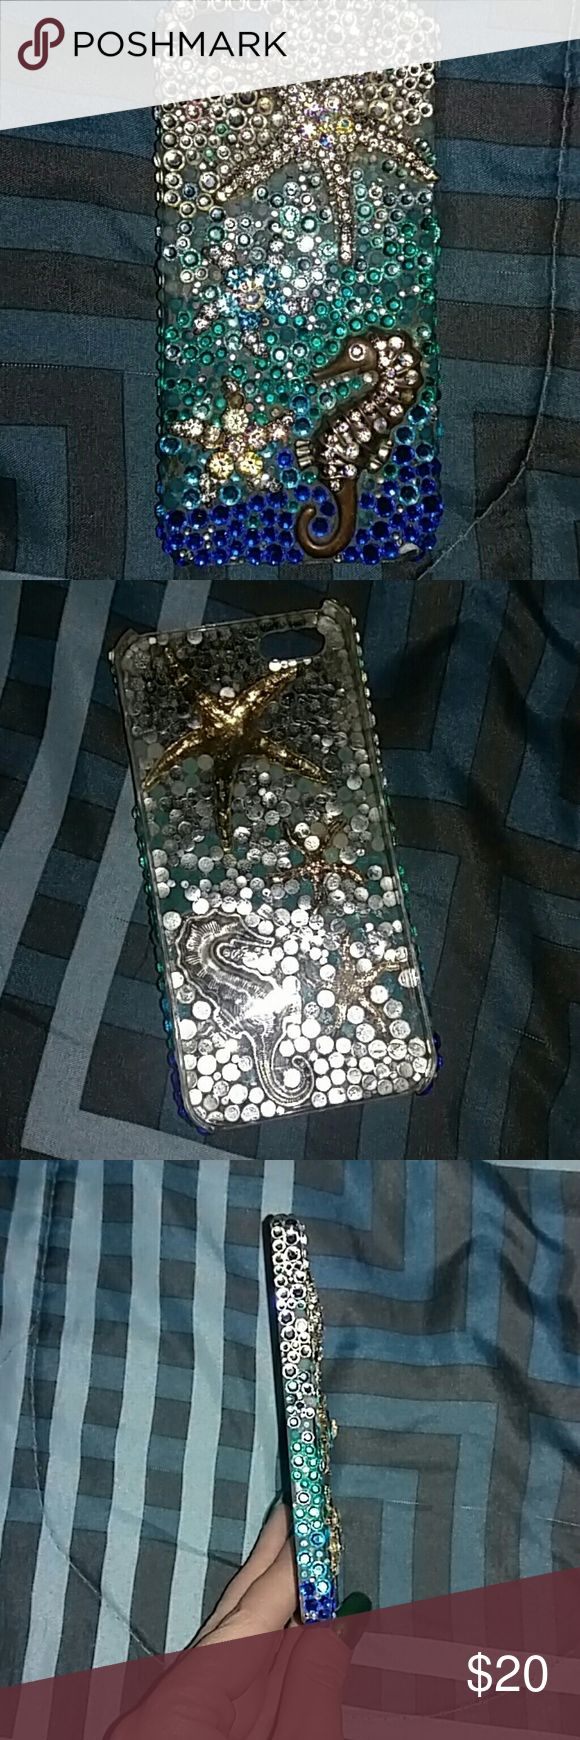 Custom Made iPhone 5 Mermaid Phone Case Custom made, missing jewels. Paid $50 selling for $10. Accessories Phone Cases